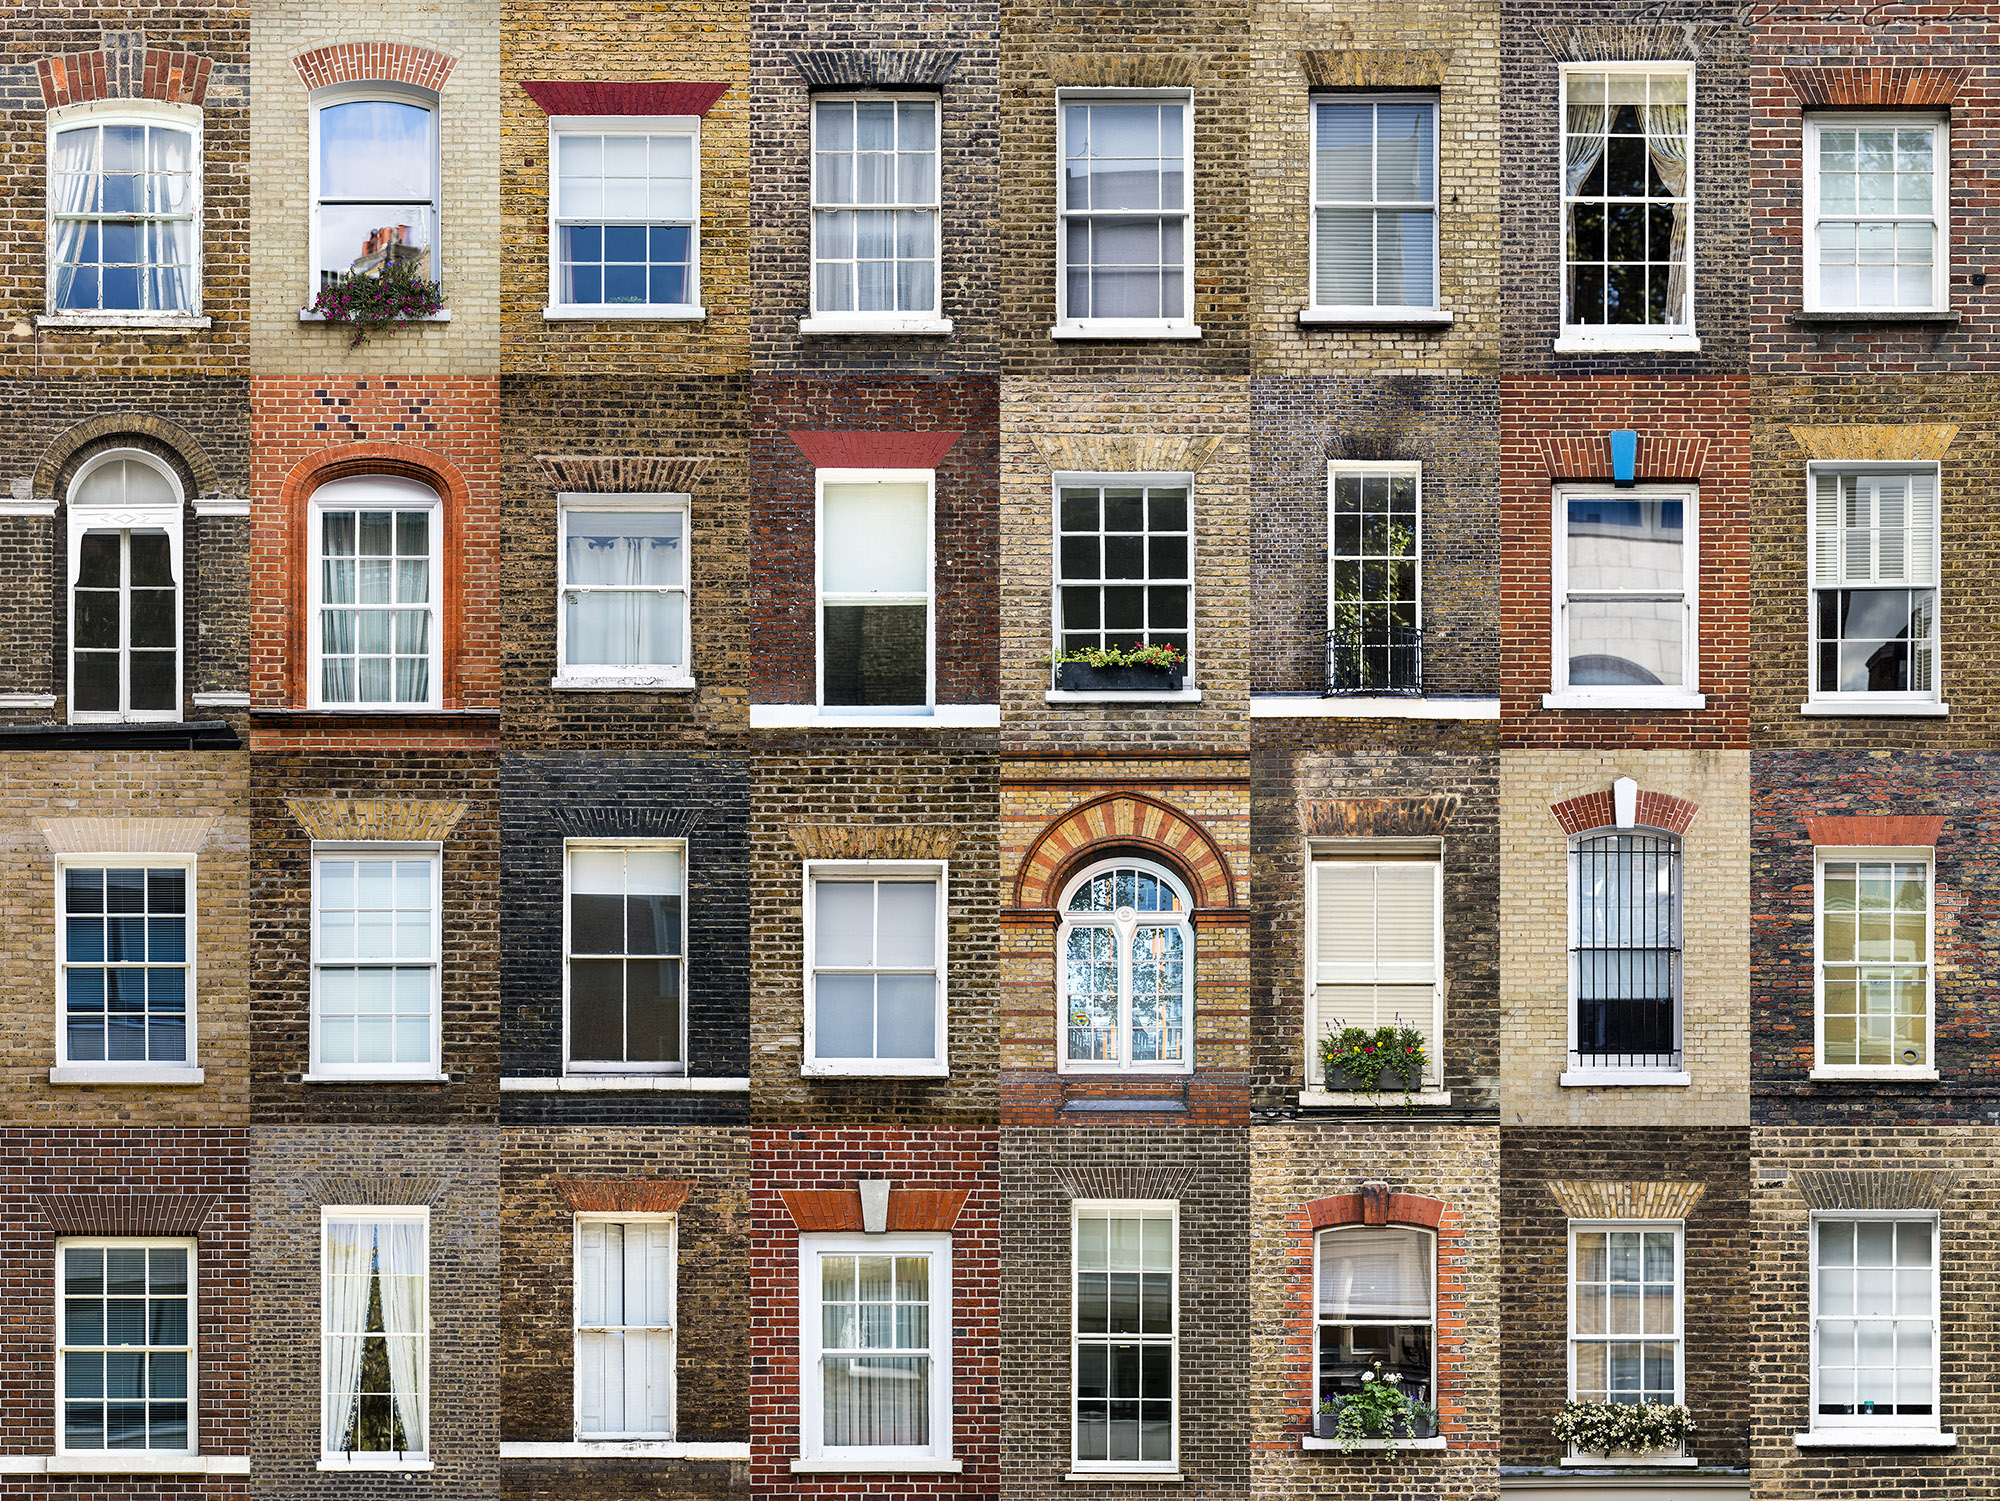 AndreVicenteGoncalves-Windows-of-the-World-Europe-England-London-copy-1.jpg